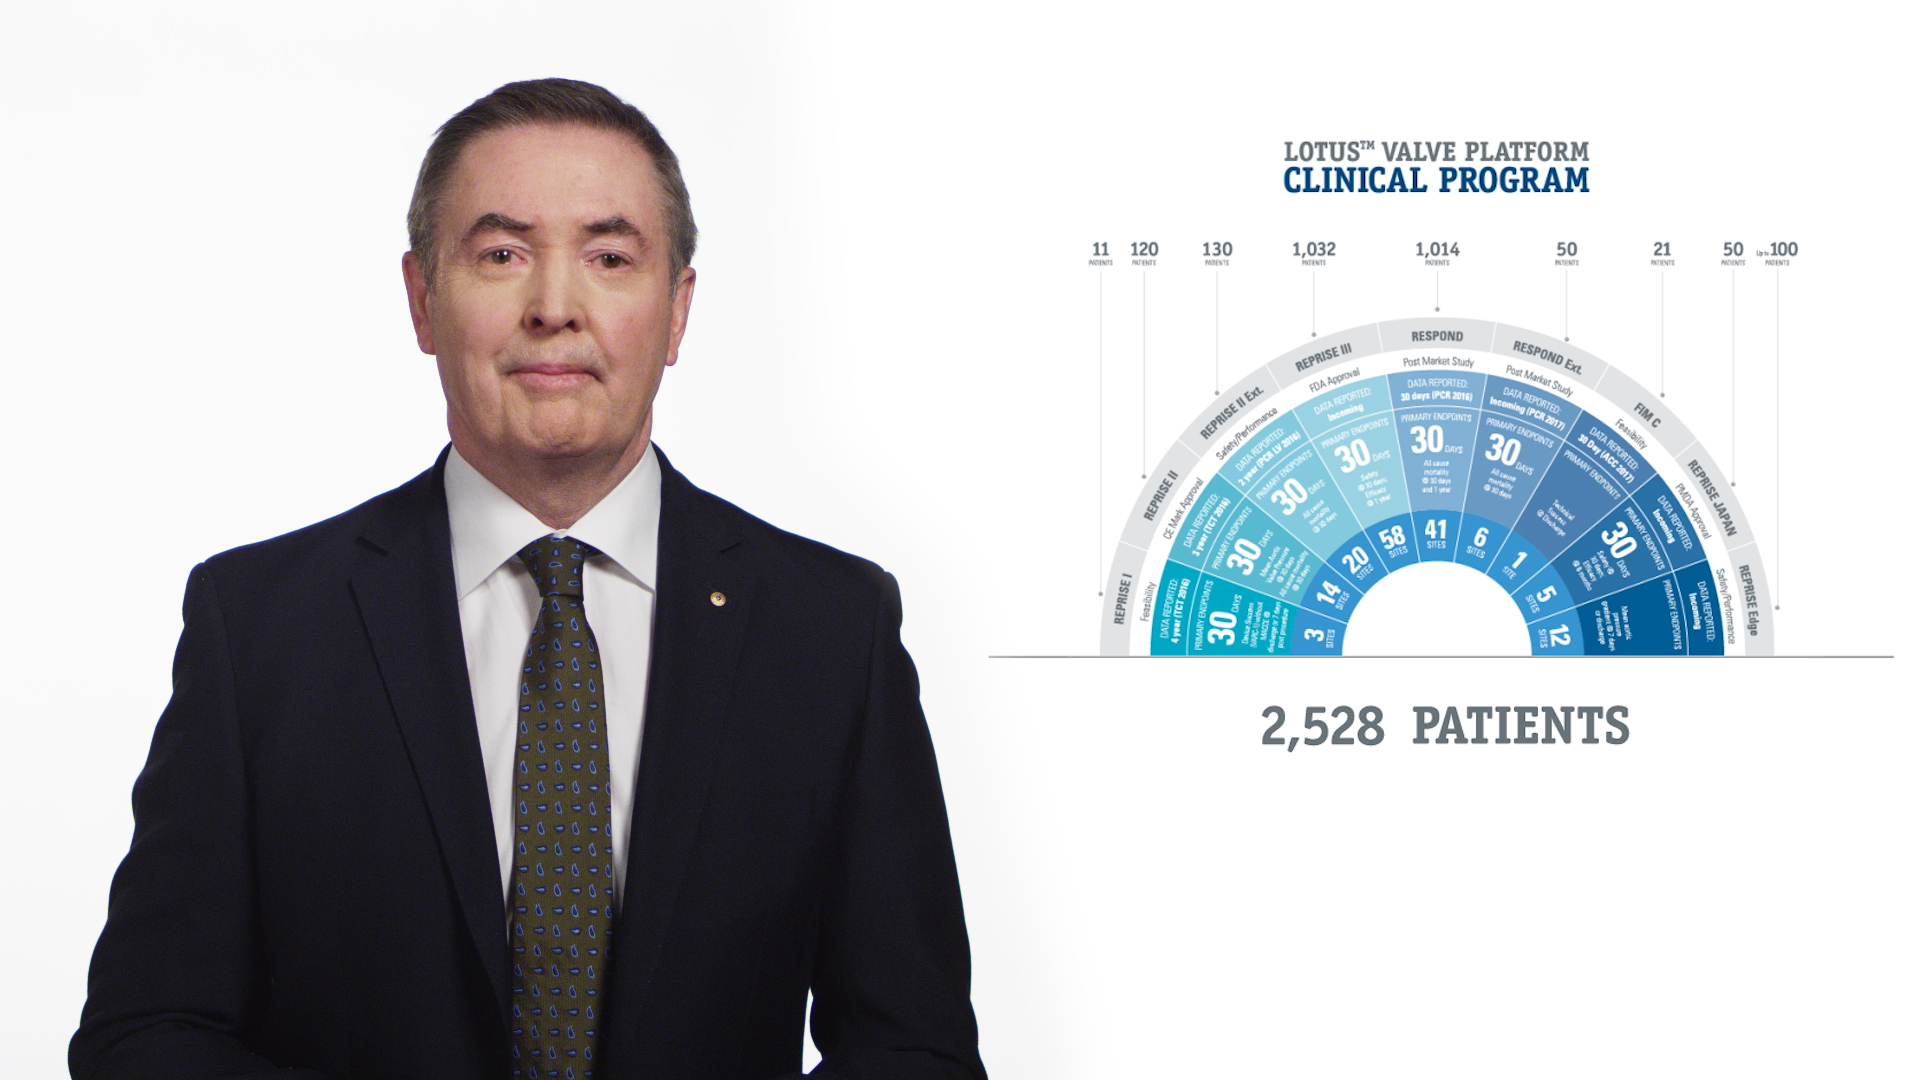 View Clinical Program Highlights Video